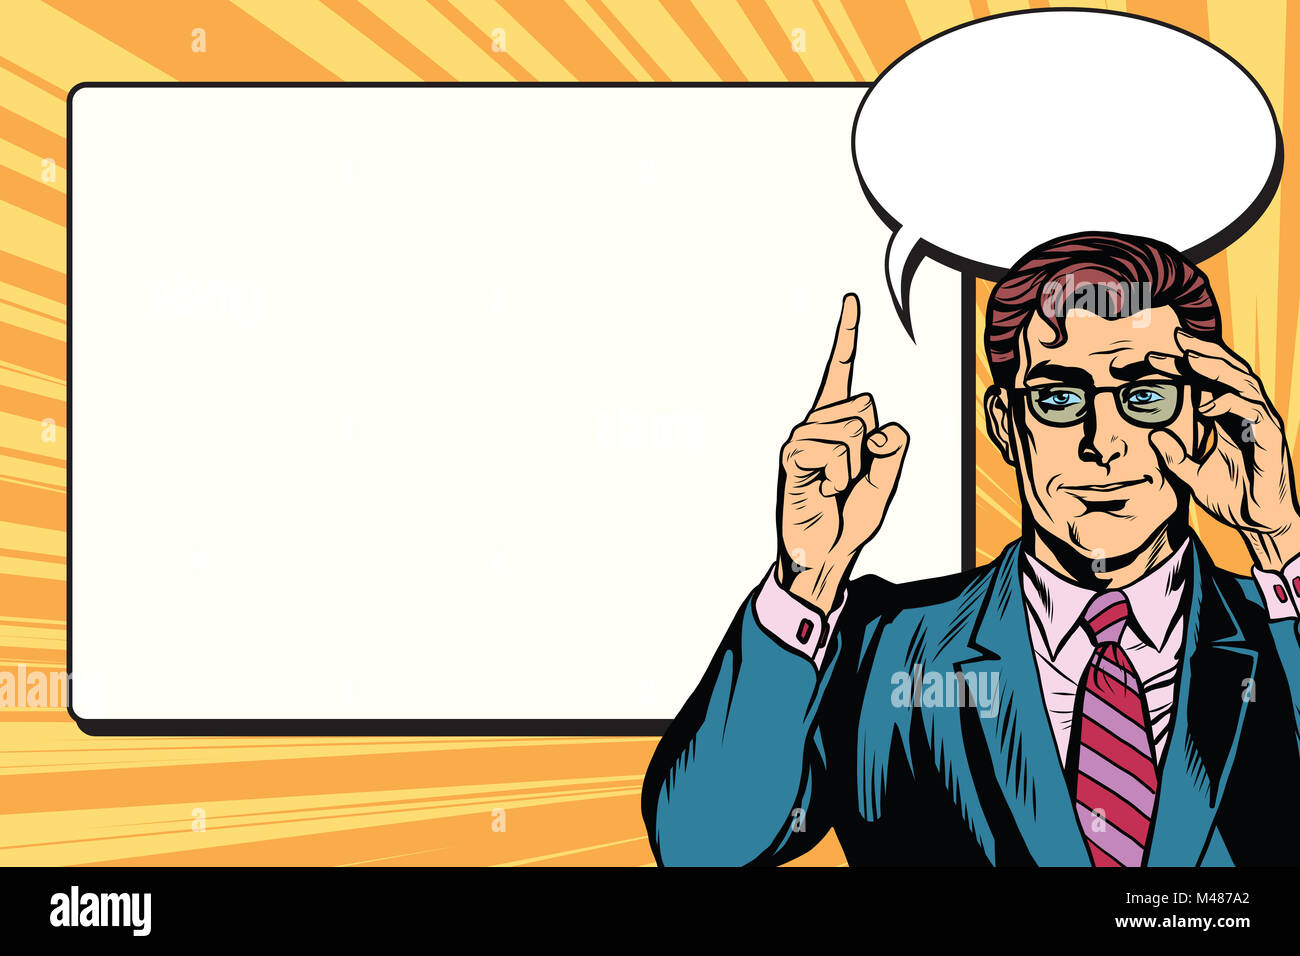 Pop art businessman with frame for text - Stock Image